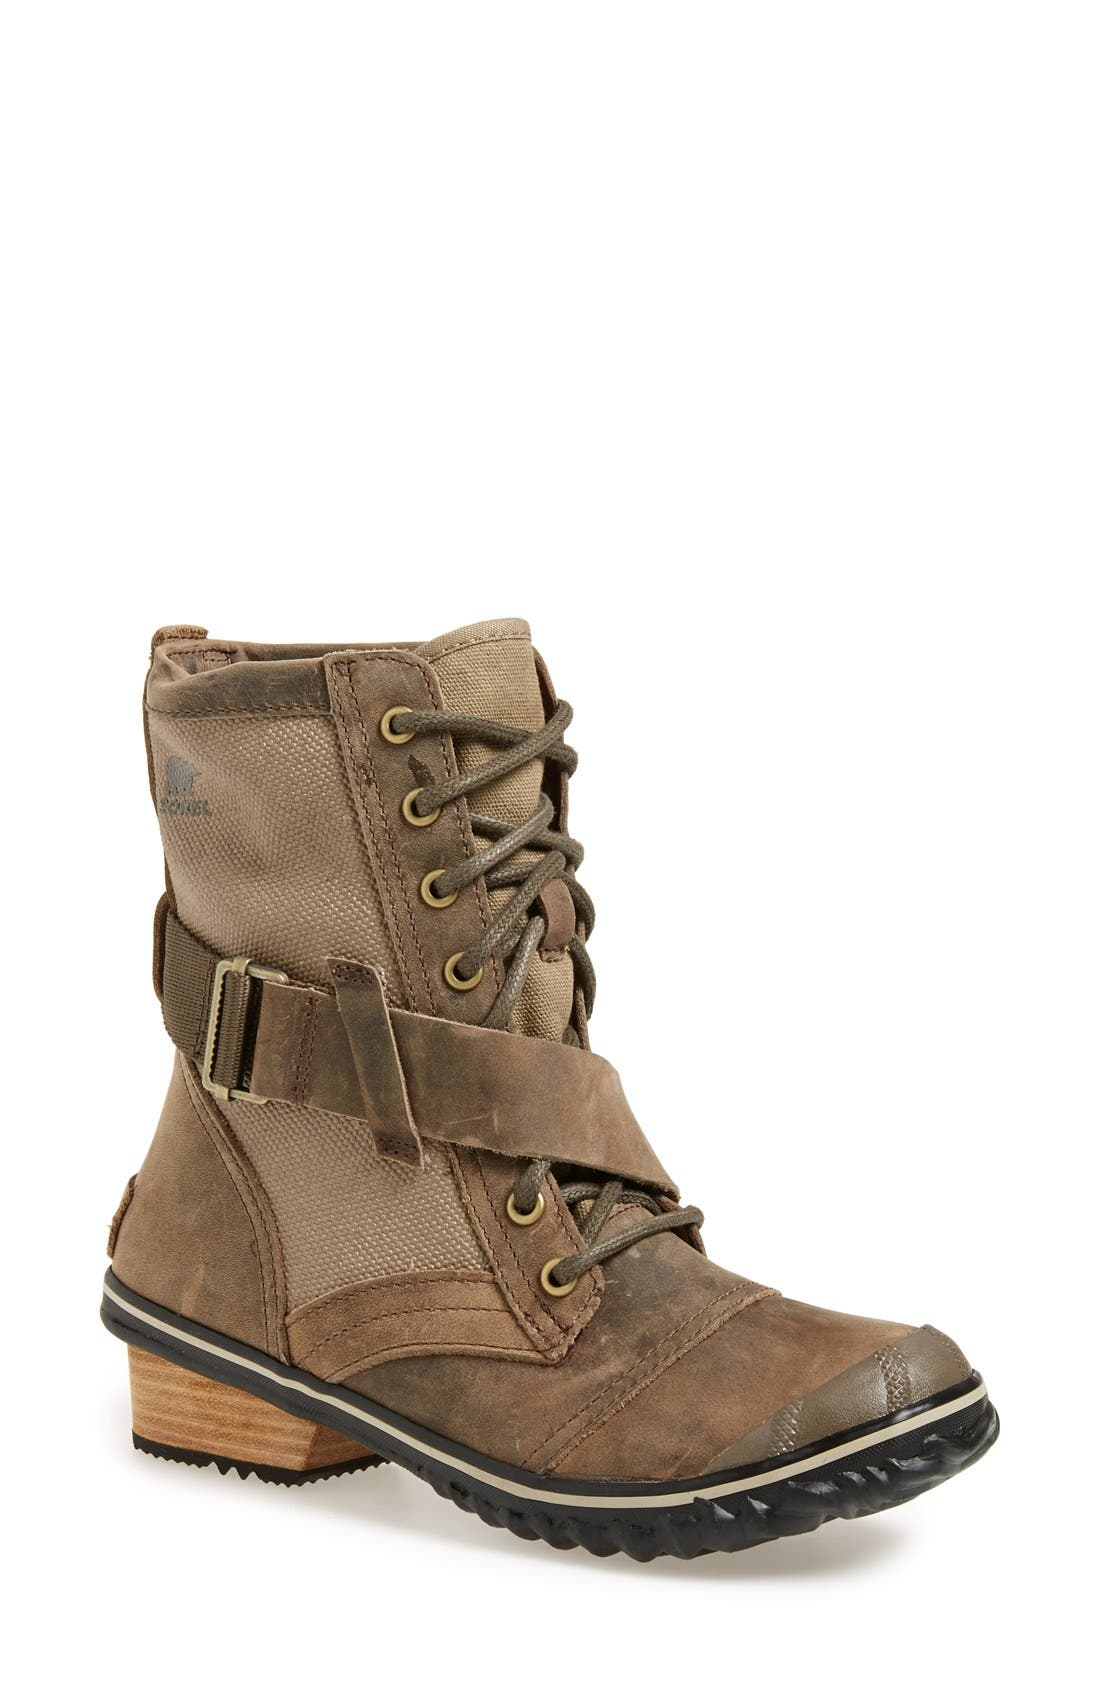 Alternate Image 1 Selected - SOREL 'Slimboot™' Waterproof Lace-Up Boot (Women)